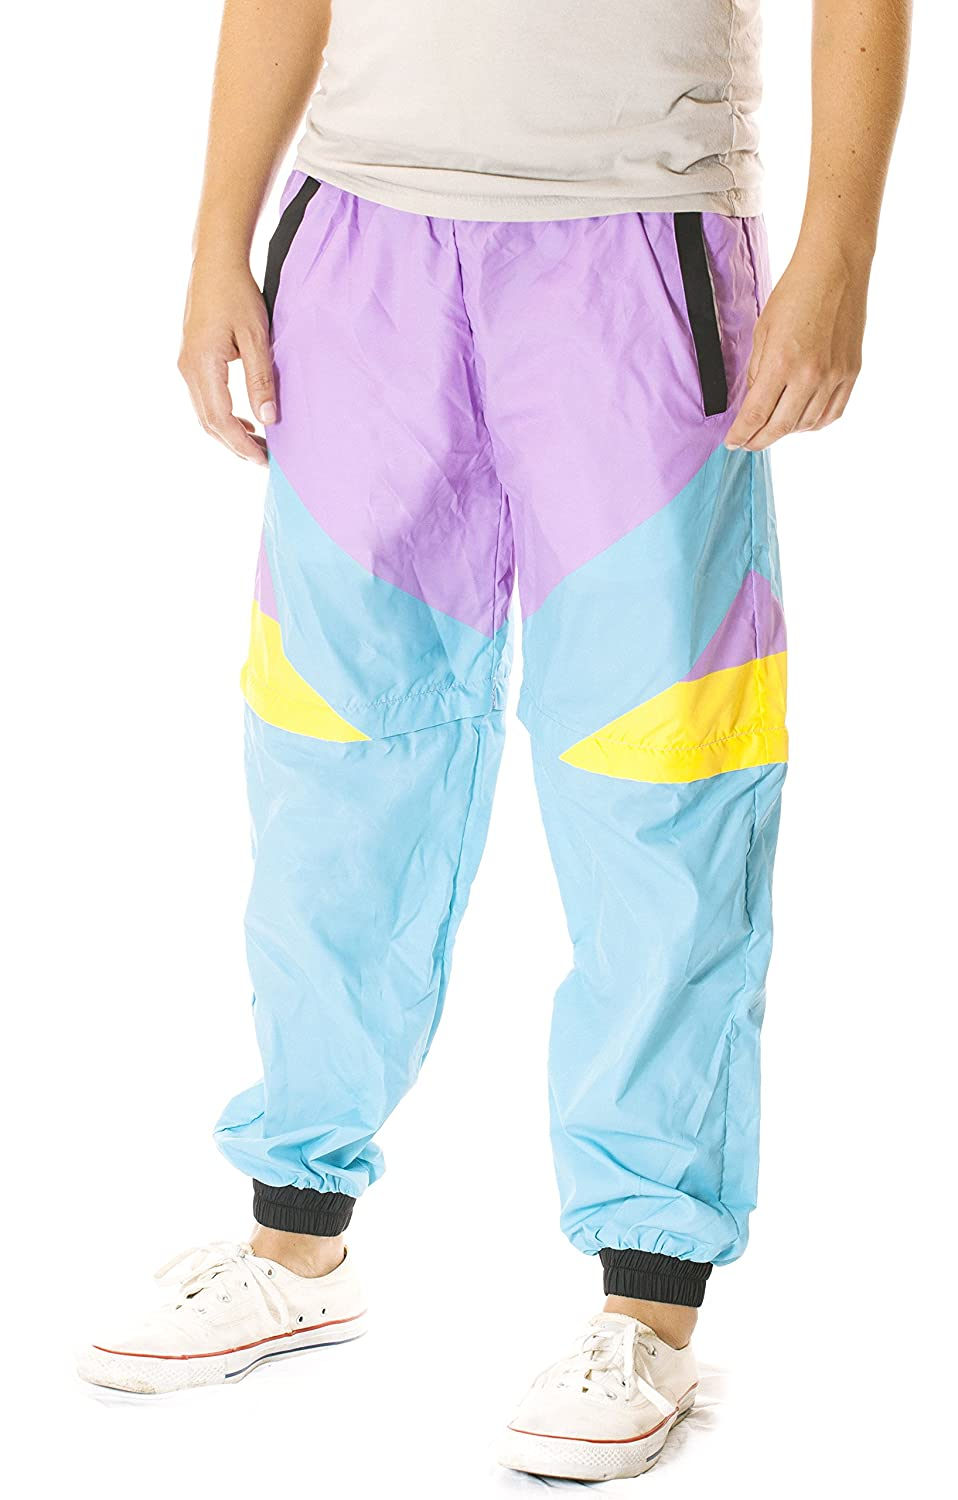 1900s, 1910s, WW1, Titanic Costumes Funny Guy Mugs 80s & 90s Retro Neon Windbreaker Pants - Convertible Shorts Or Pants $46.99 AT vintagedancer.com